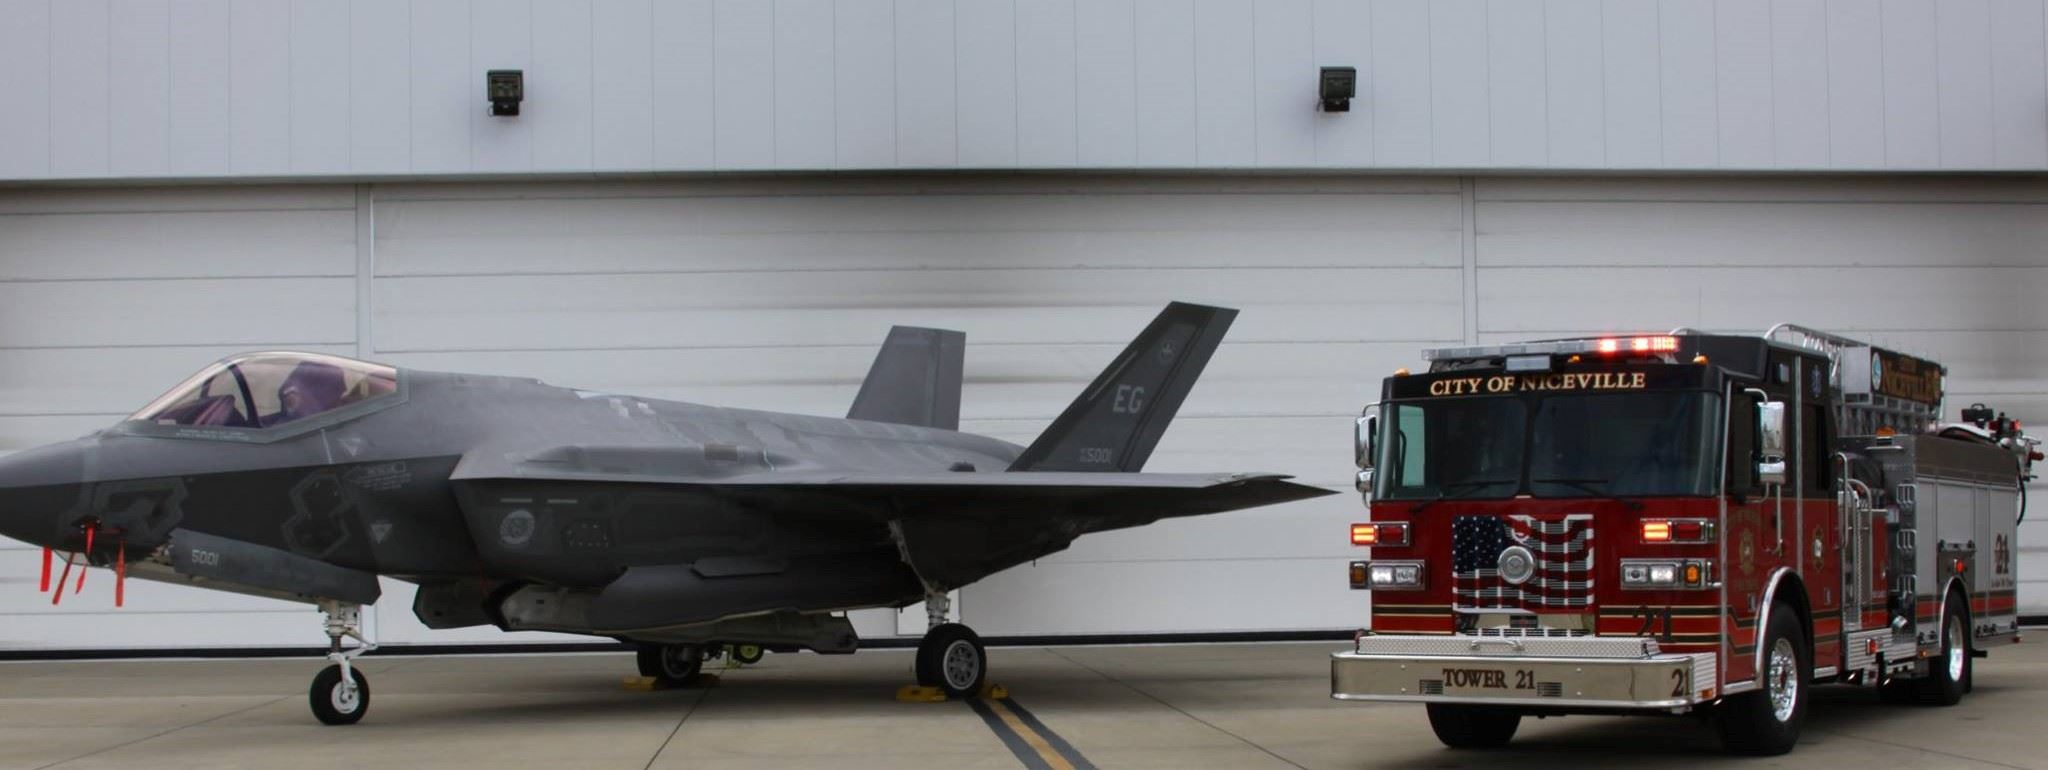 F35 fighter jet next to Tower 21